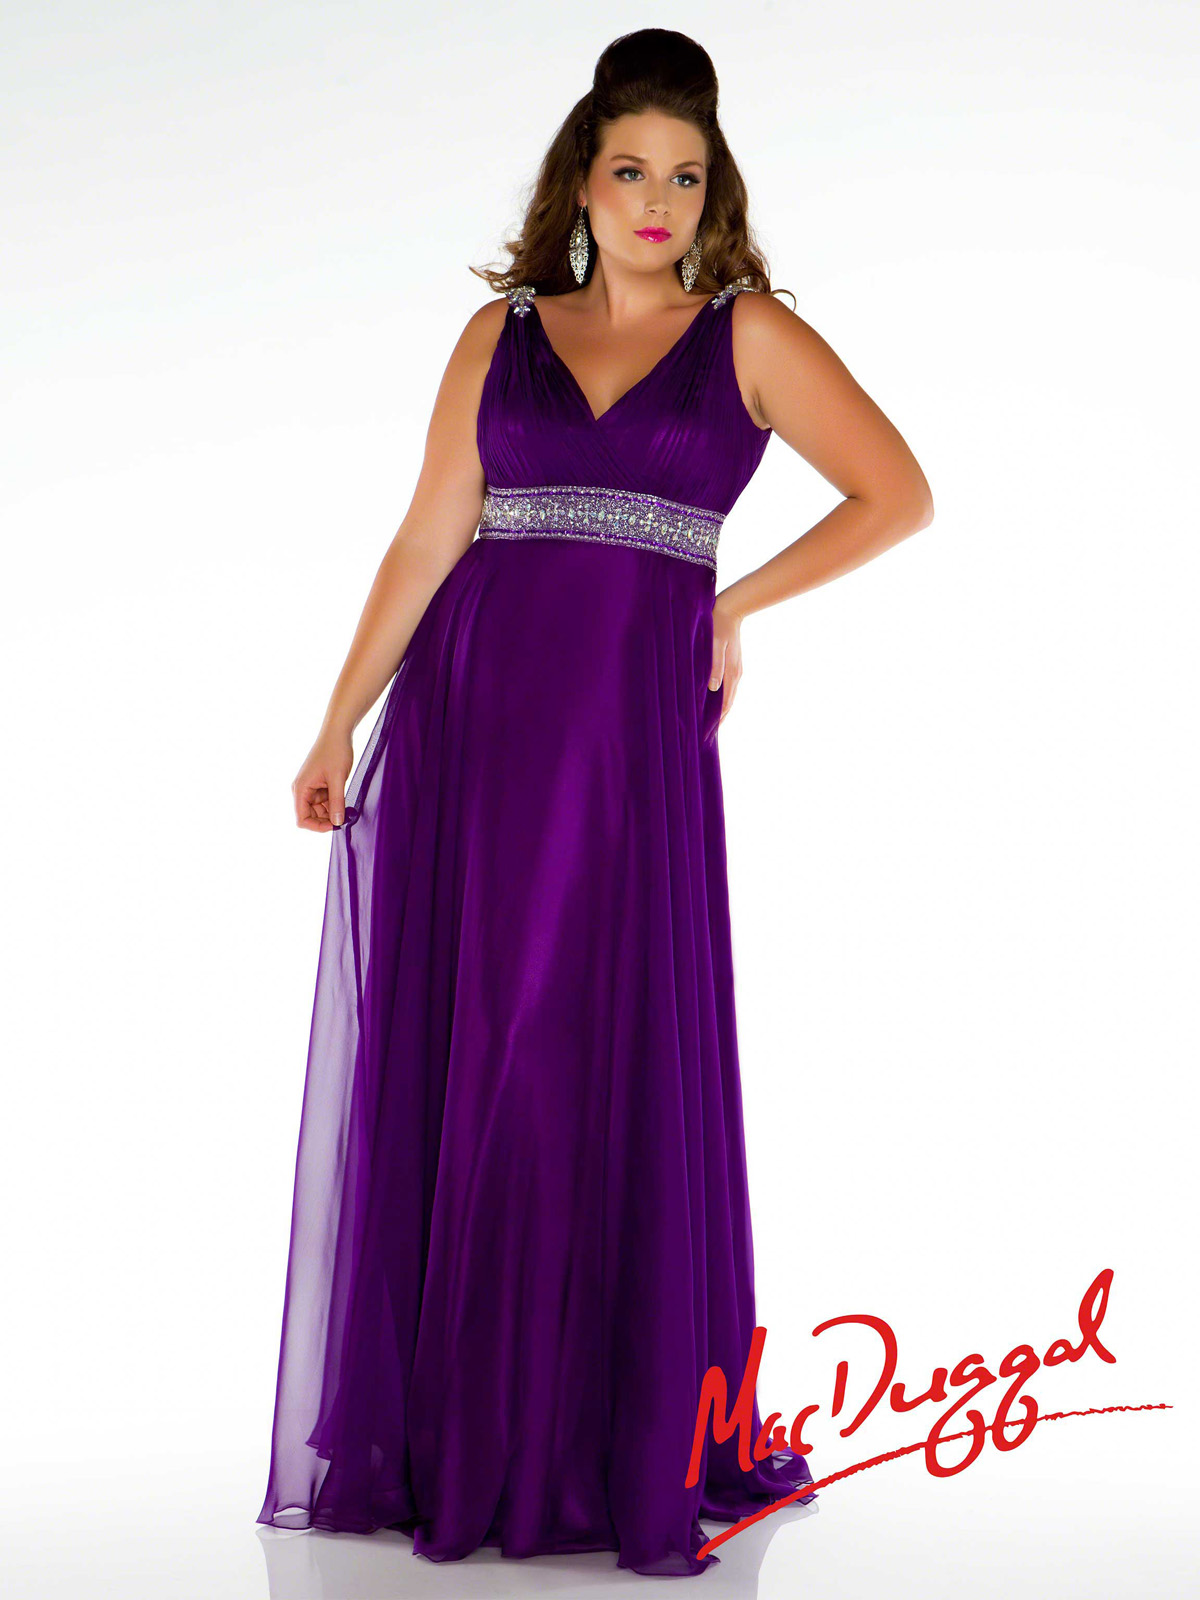 Prom Dresses Sizes 30 And Up 39